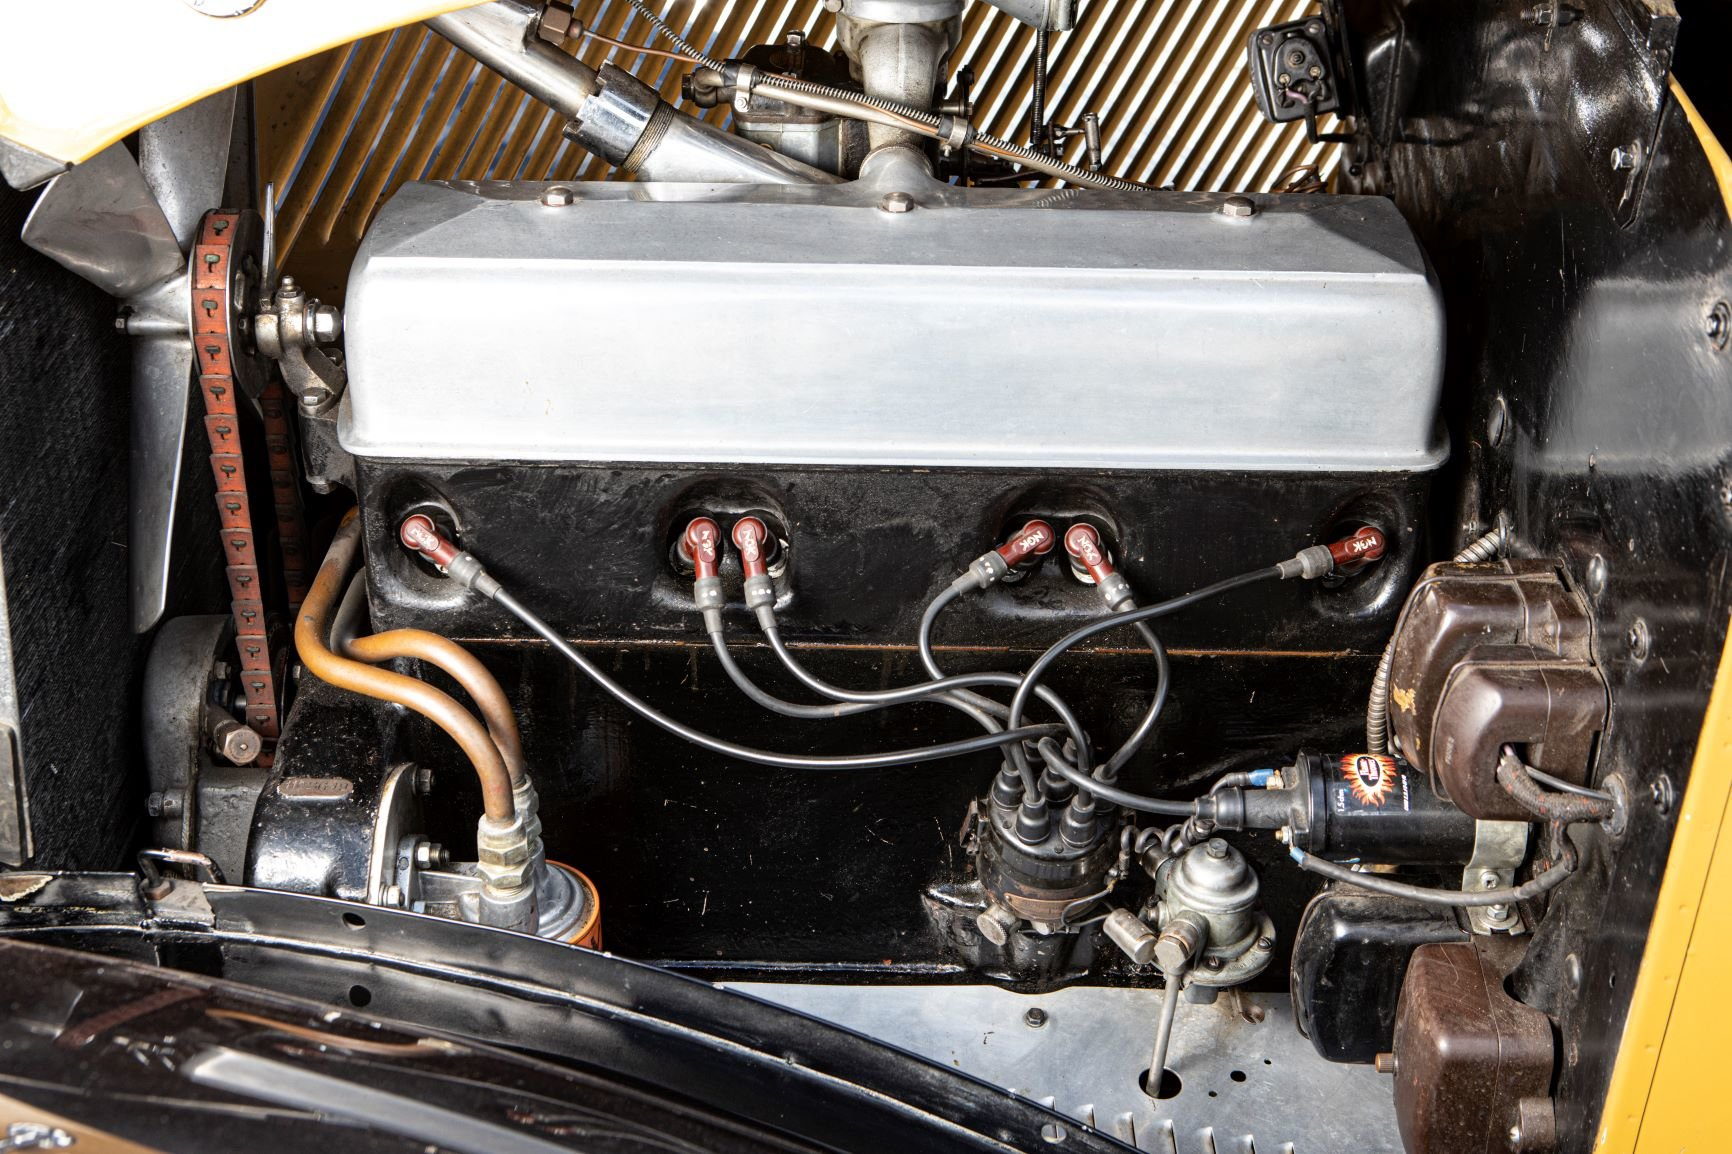 1936 Talbot 3½ Litre Speed Saloon Coachwork by Darracq For Sale (picture 6 of 6)